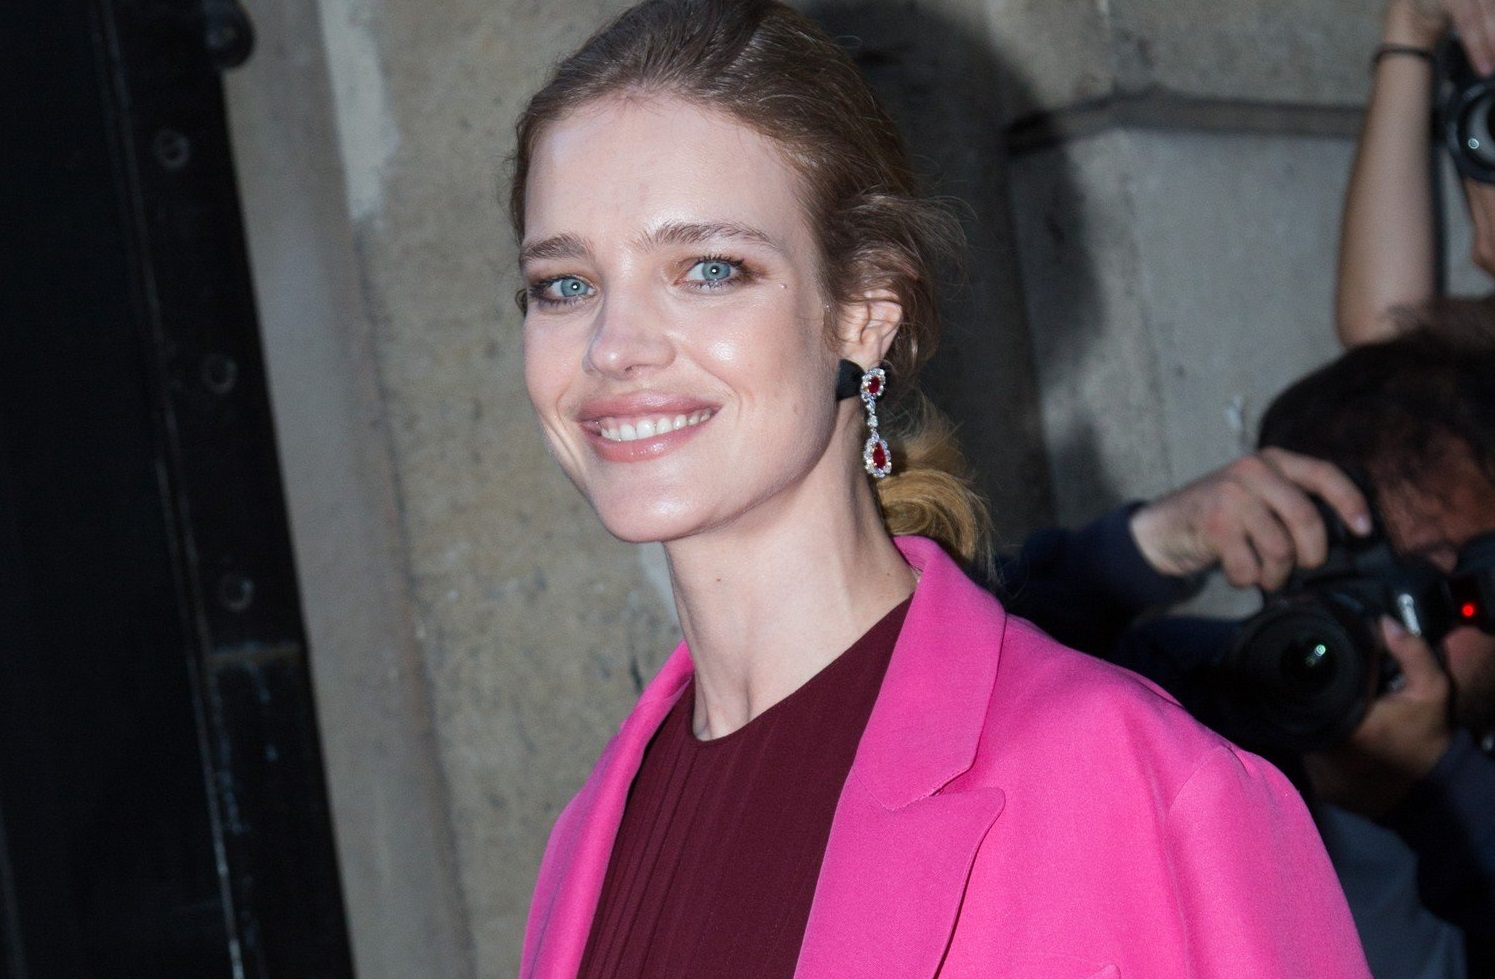 Natalia Vodianova attends the Valentino Haute Couture Fall Winter 2018/2019 show as part of Paris Fashion Week on July 4, 2018 in Paris, France., Image: 376931061, License: Rights-managed, Restrictions: , Model Release: no, Credit line: Profimedia, KCS Presse